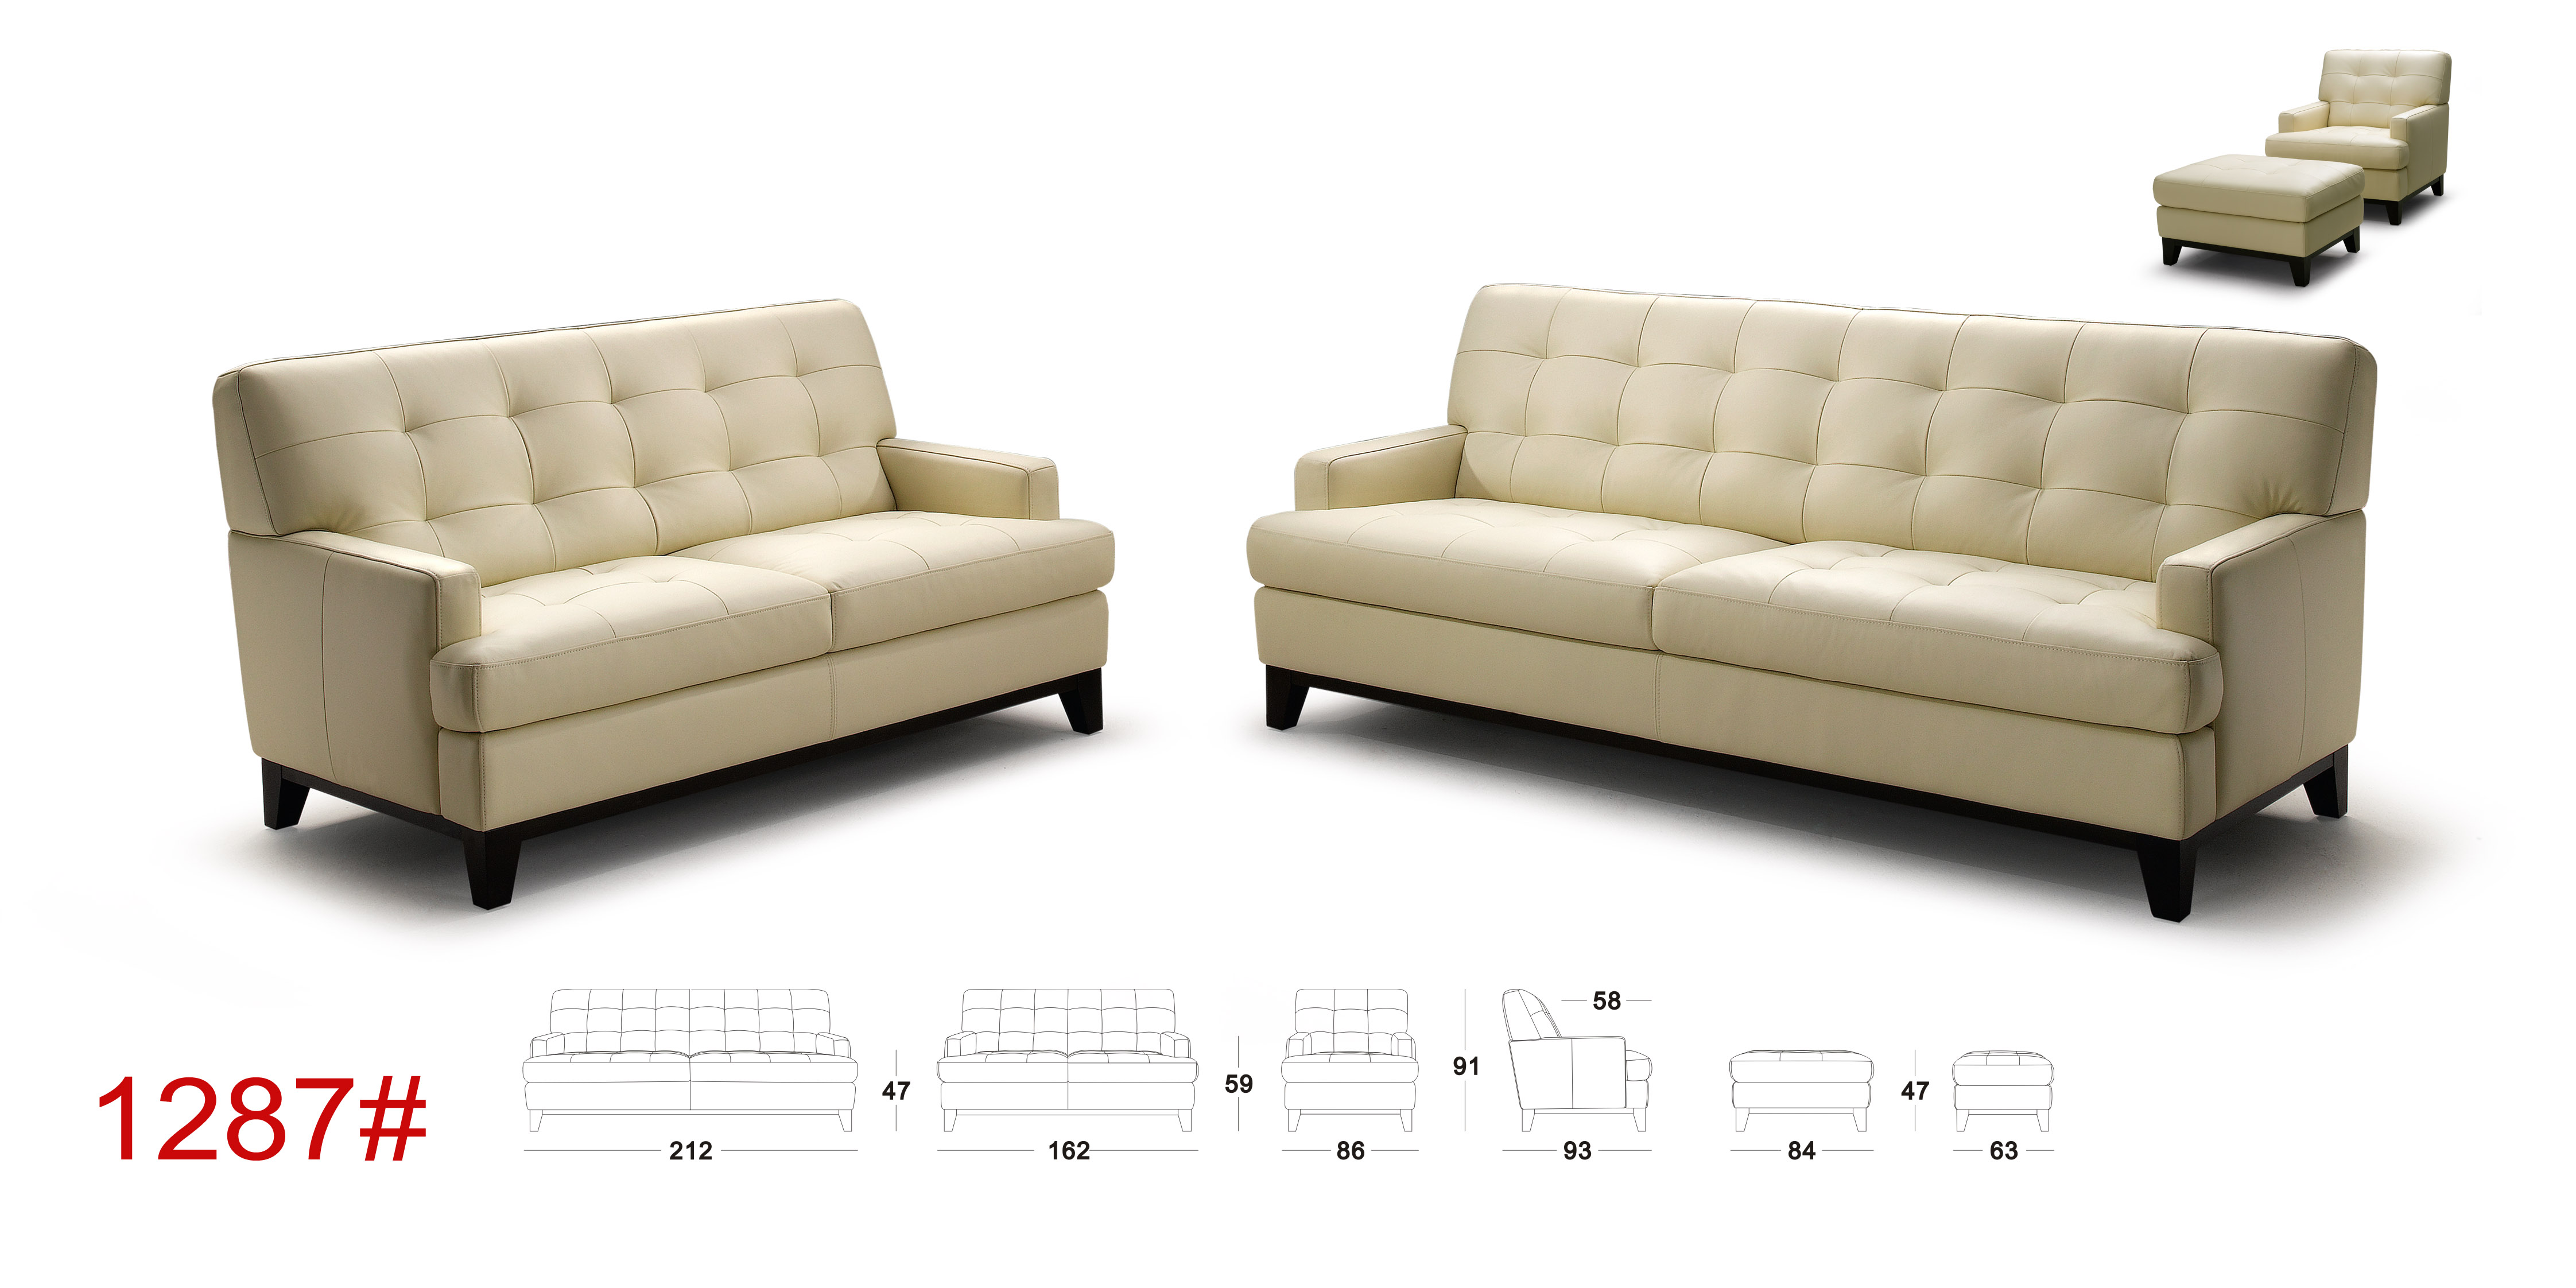 Kuka sofa kuka home co ltd zhejiang china product sofa set for Furniture vancouver